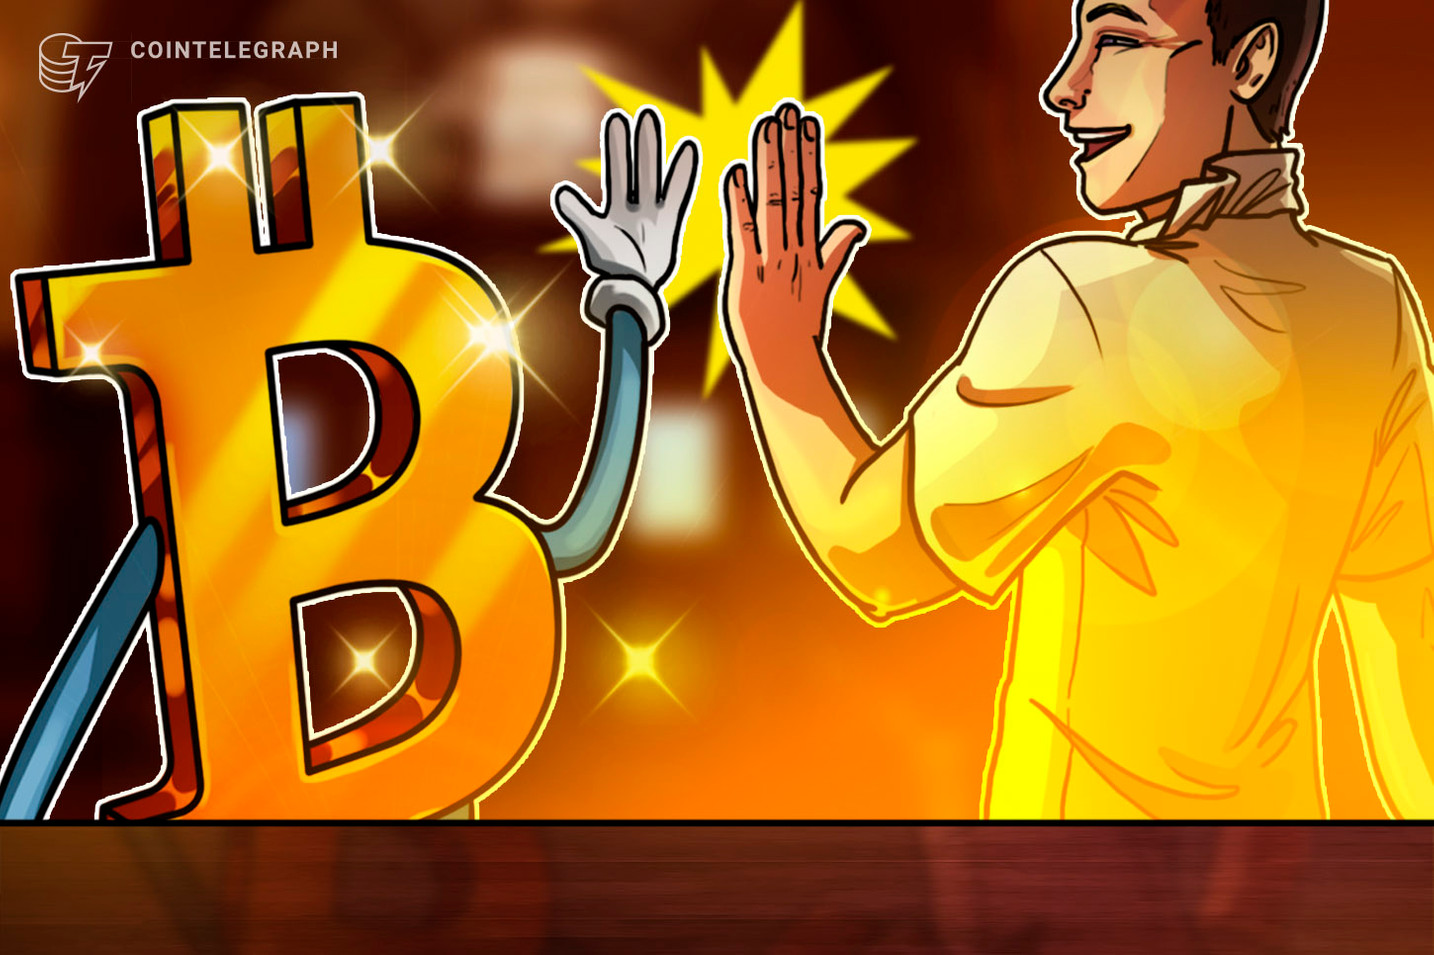 Bitcoin-Only Exchange Coinfloor Now Focuses on Consumer BTC Services